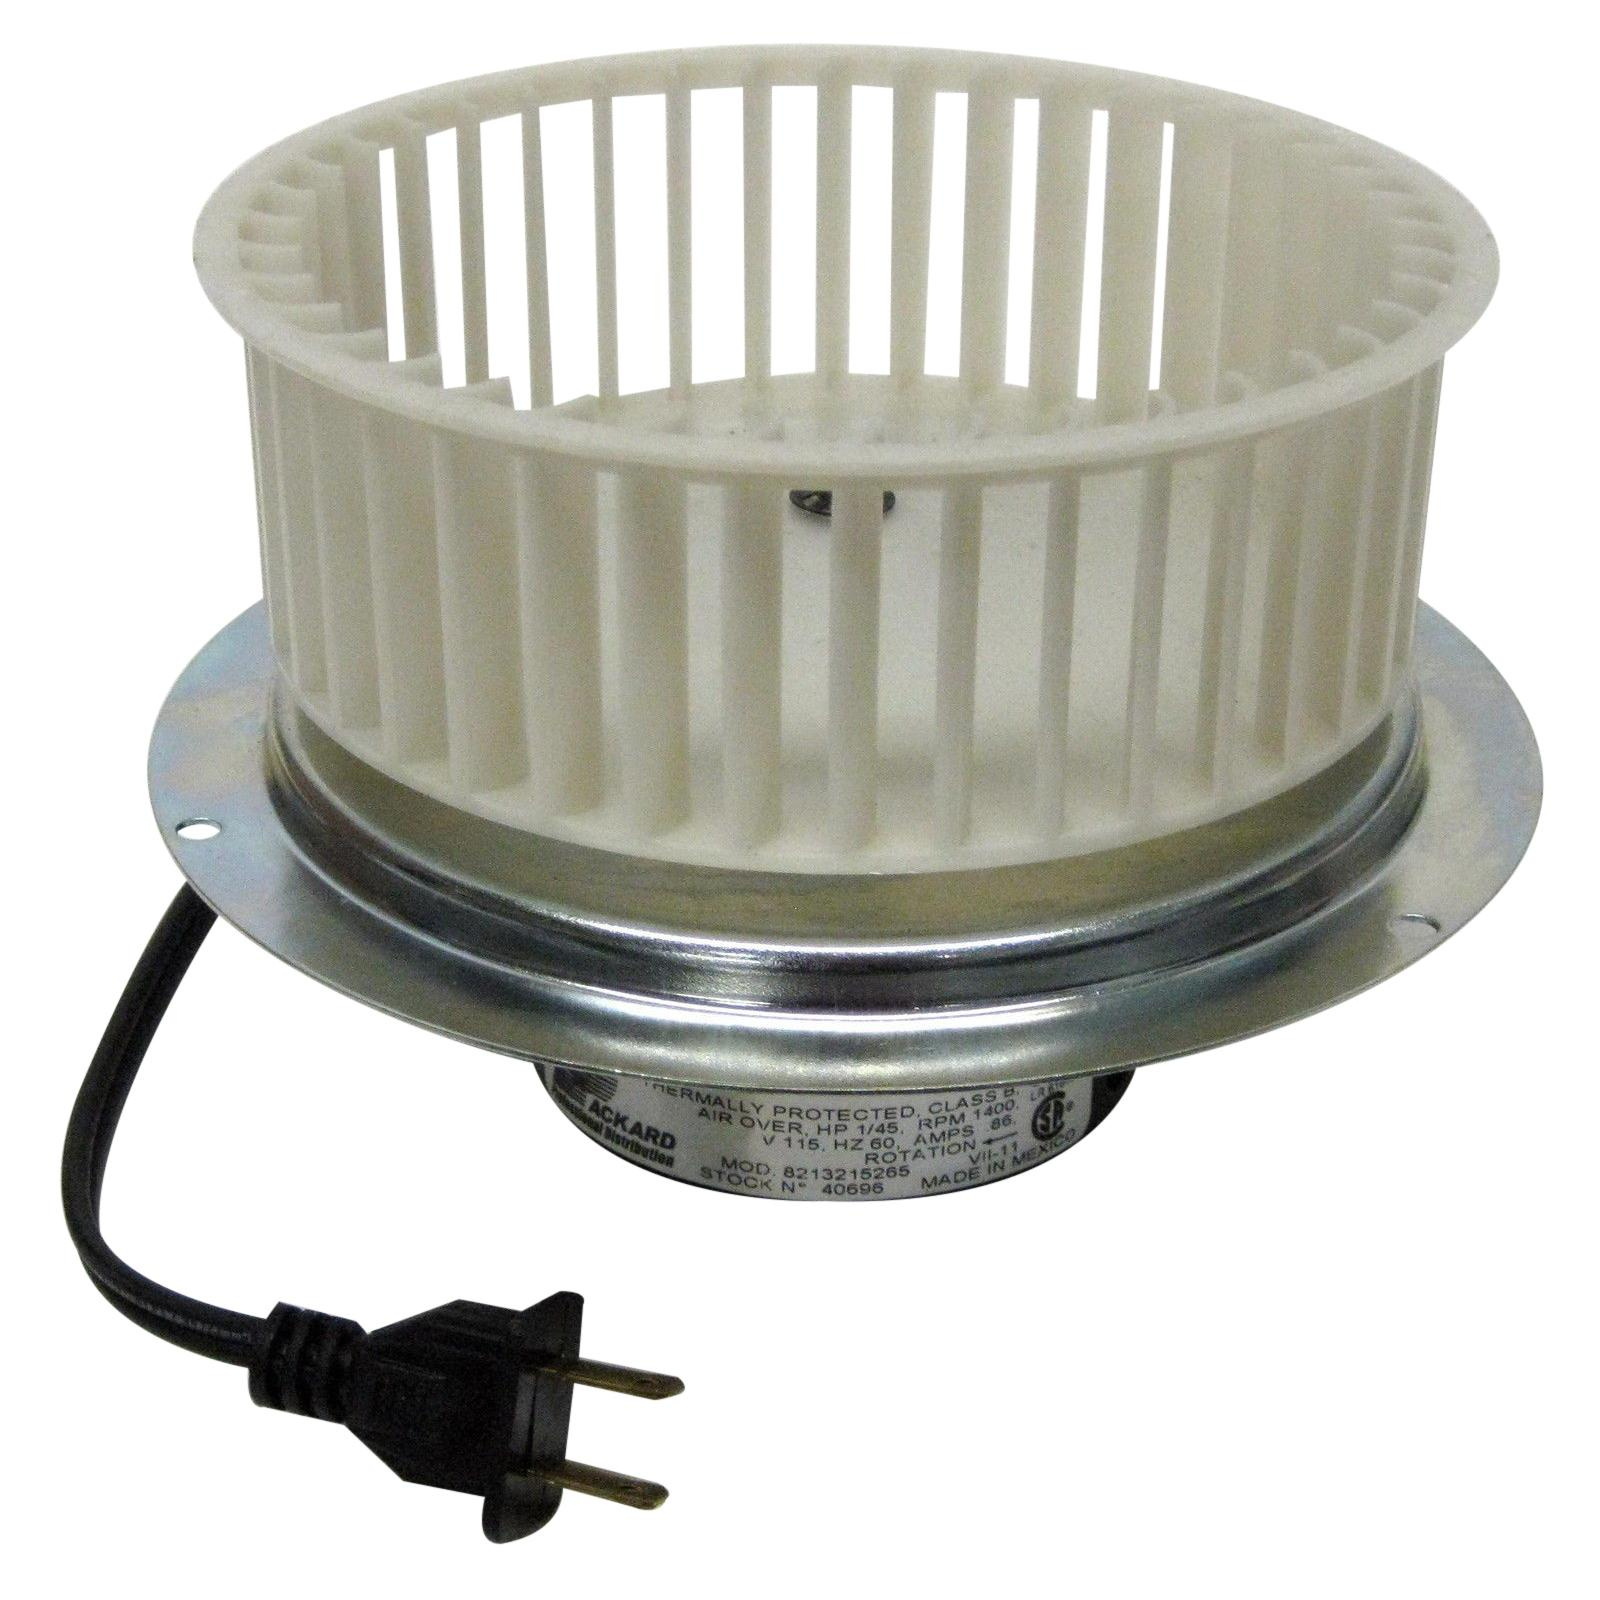 NuTone 0696B000 Motor Assembly for QT100 and QT110 Series Fans Replacement